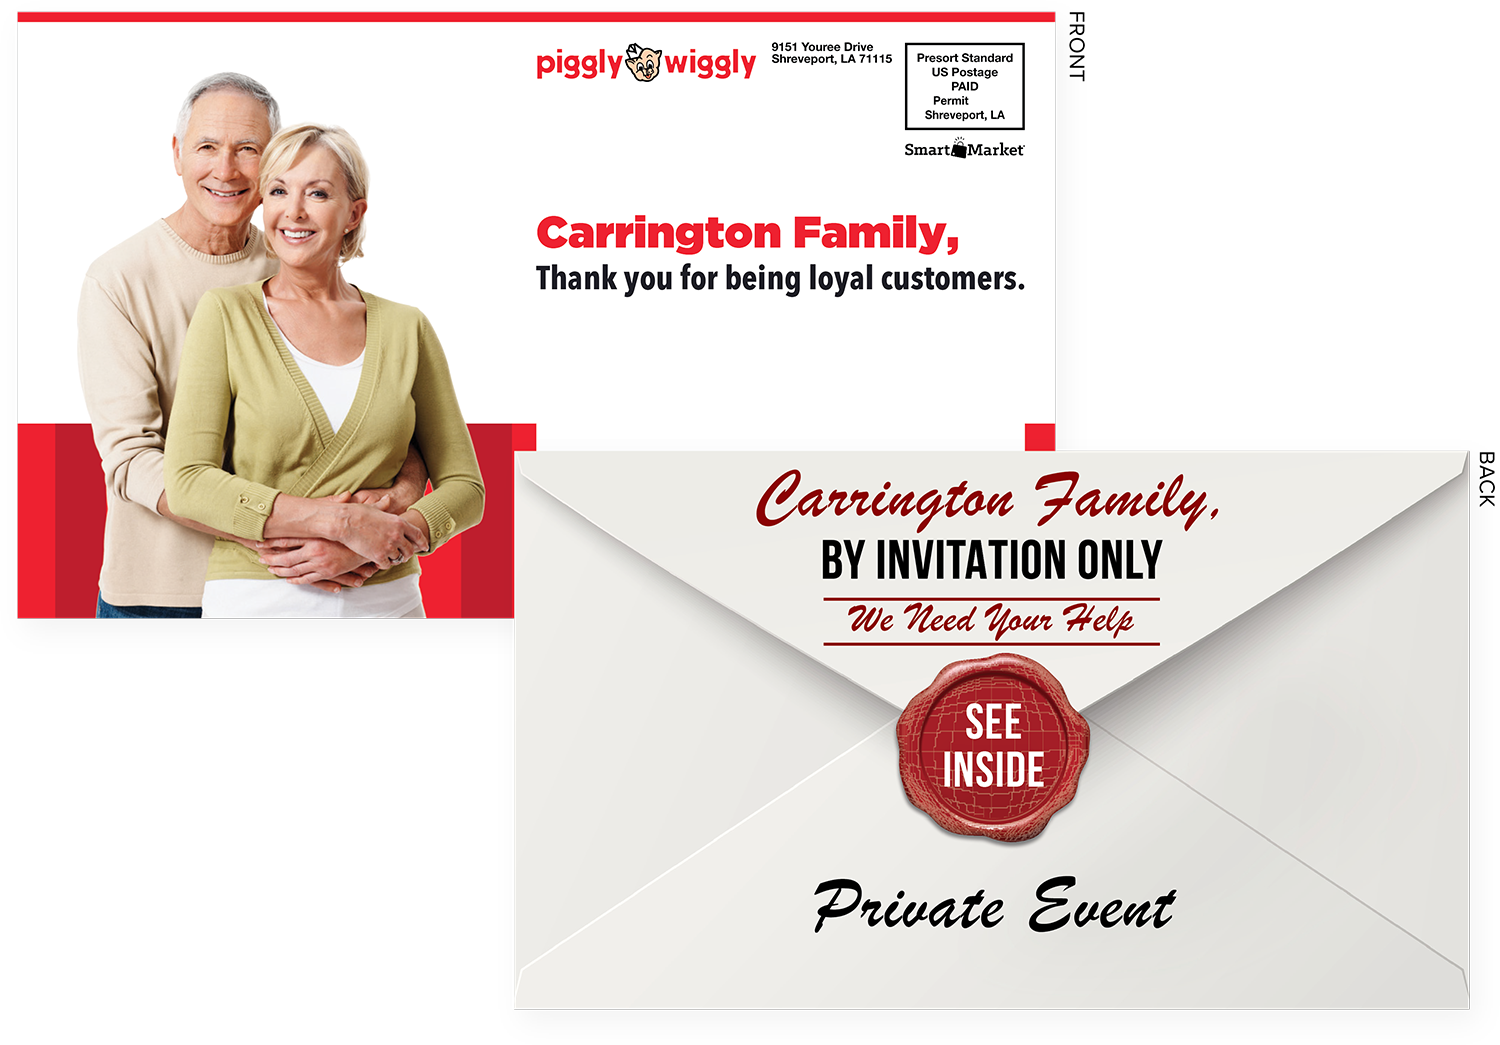 Piggly Wiggly Direct Mail